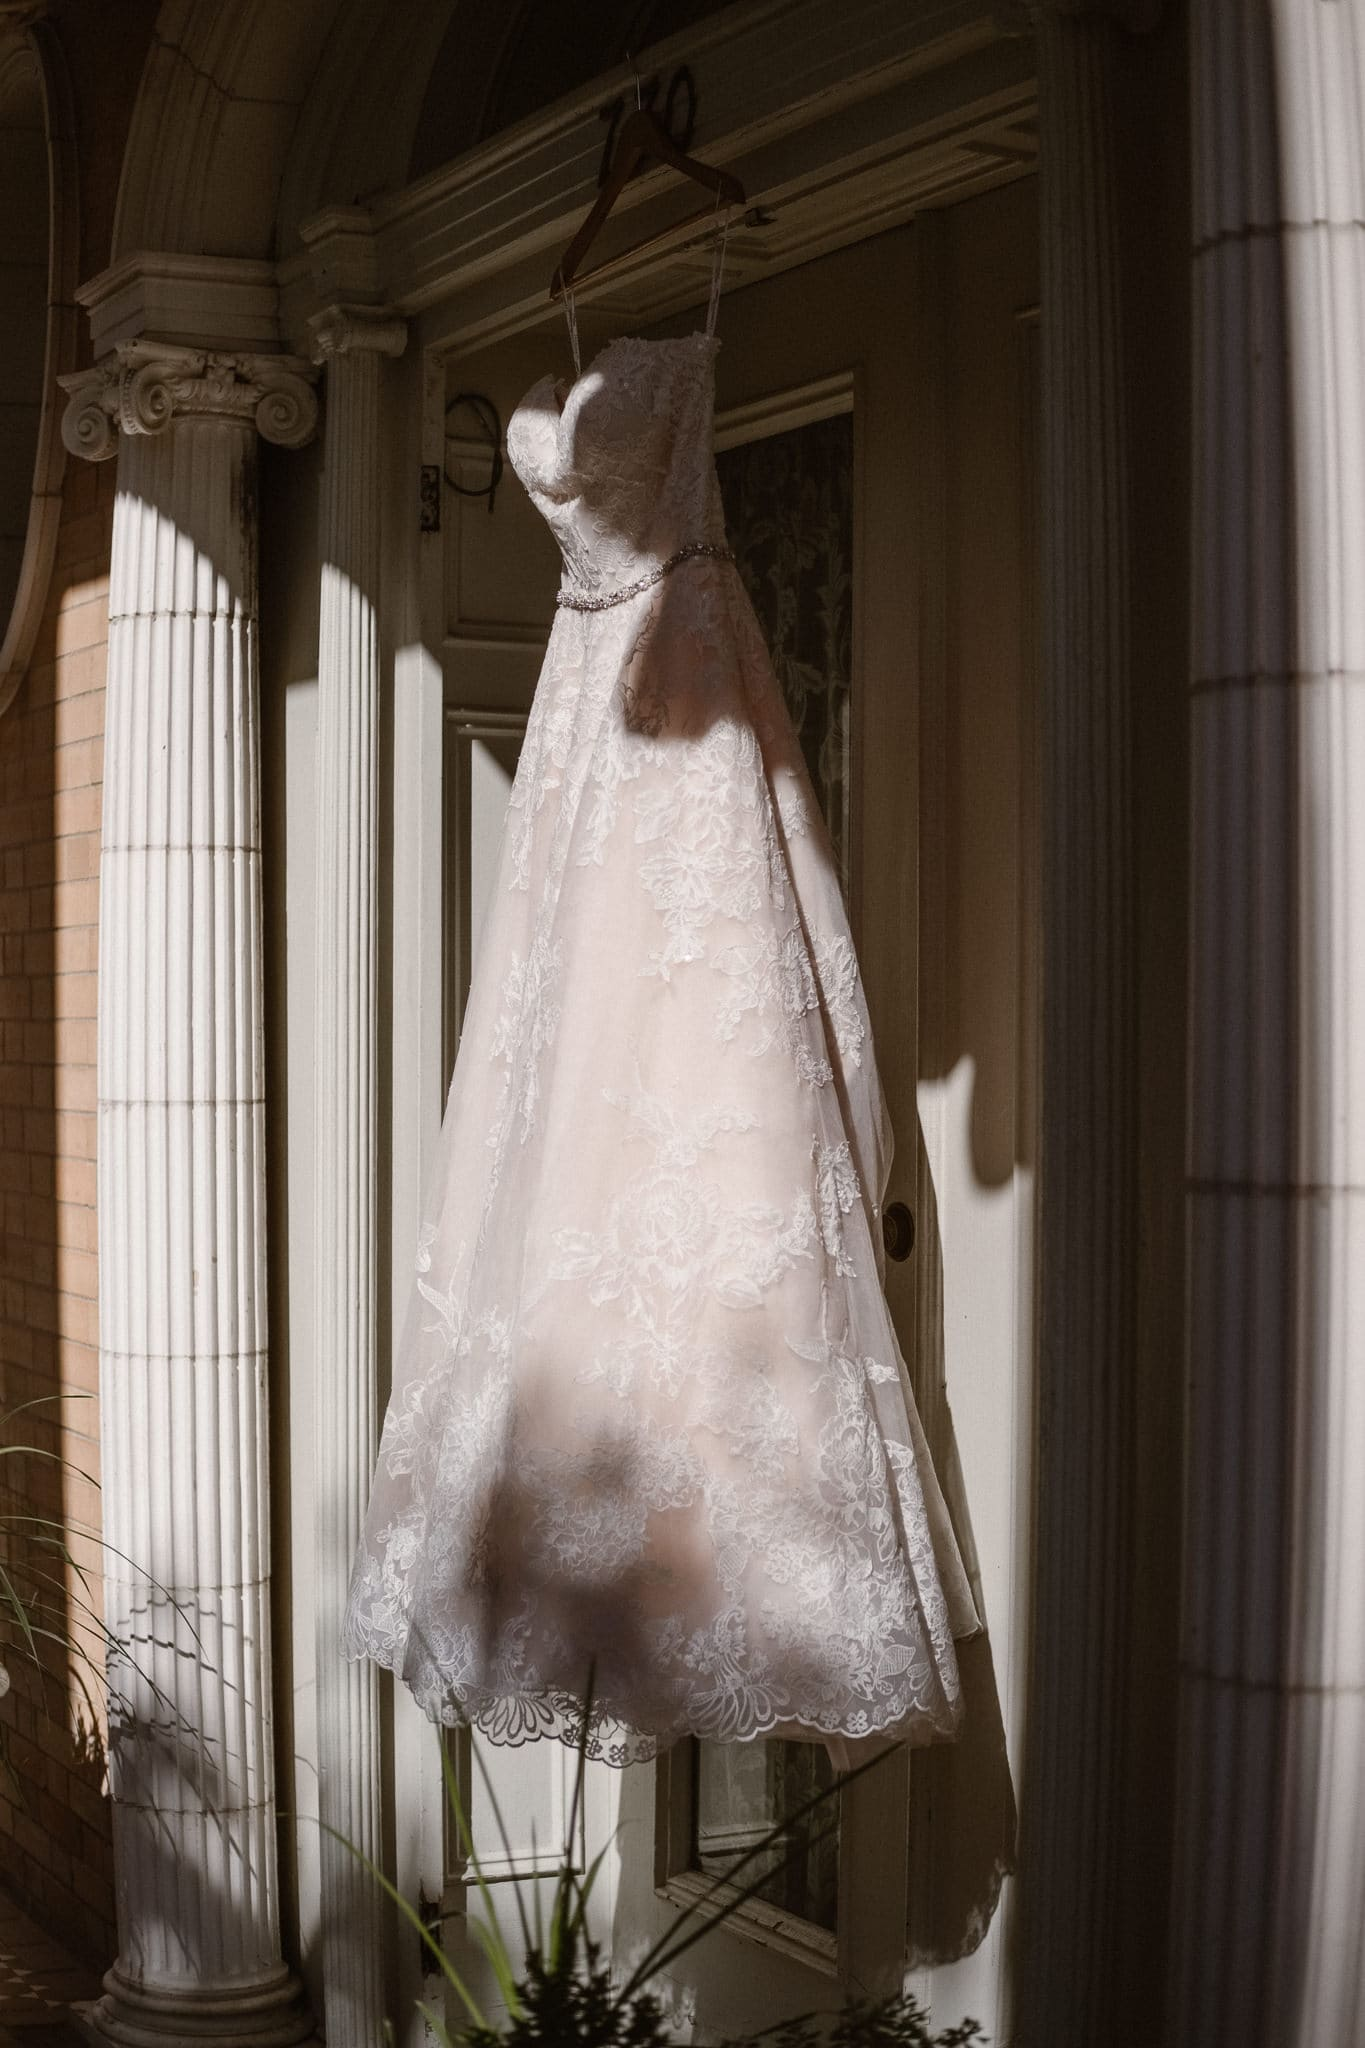 Grant Humphreys Mansion Wedding Photographer, Denver wedding photographer, Colorado wedding photographer, wedding dress